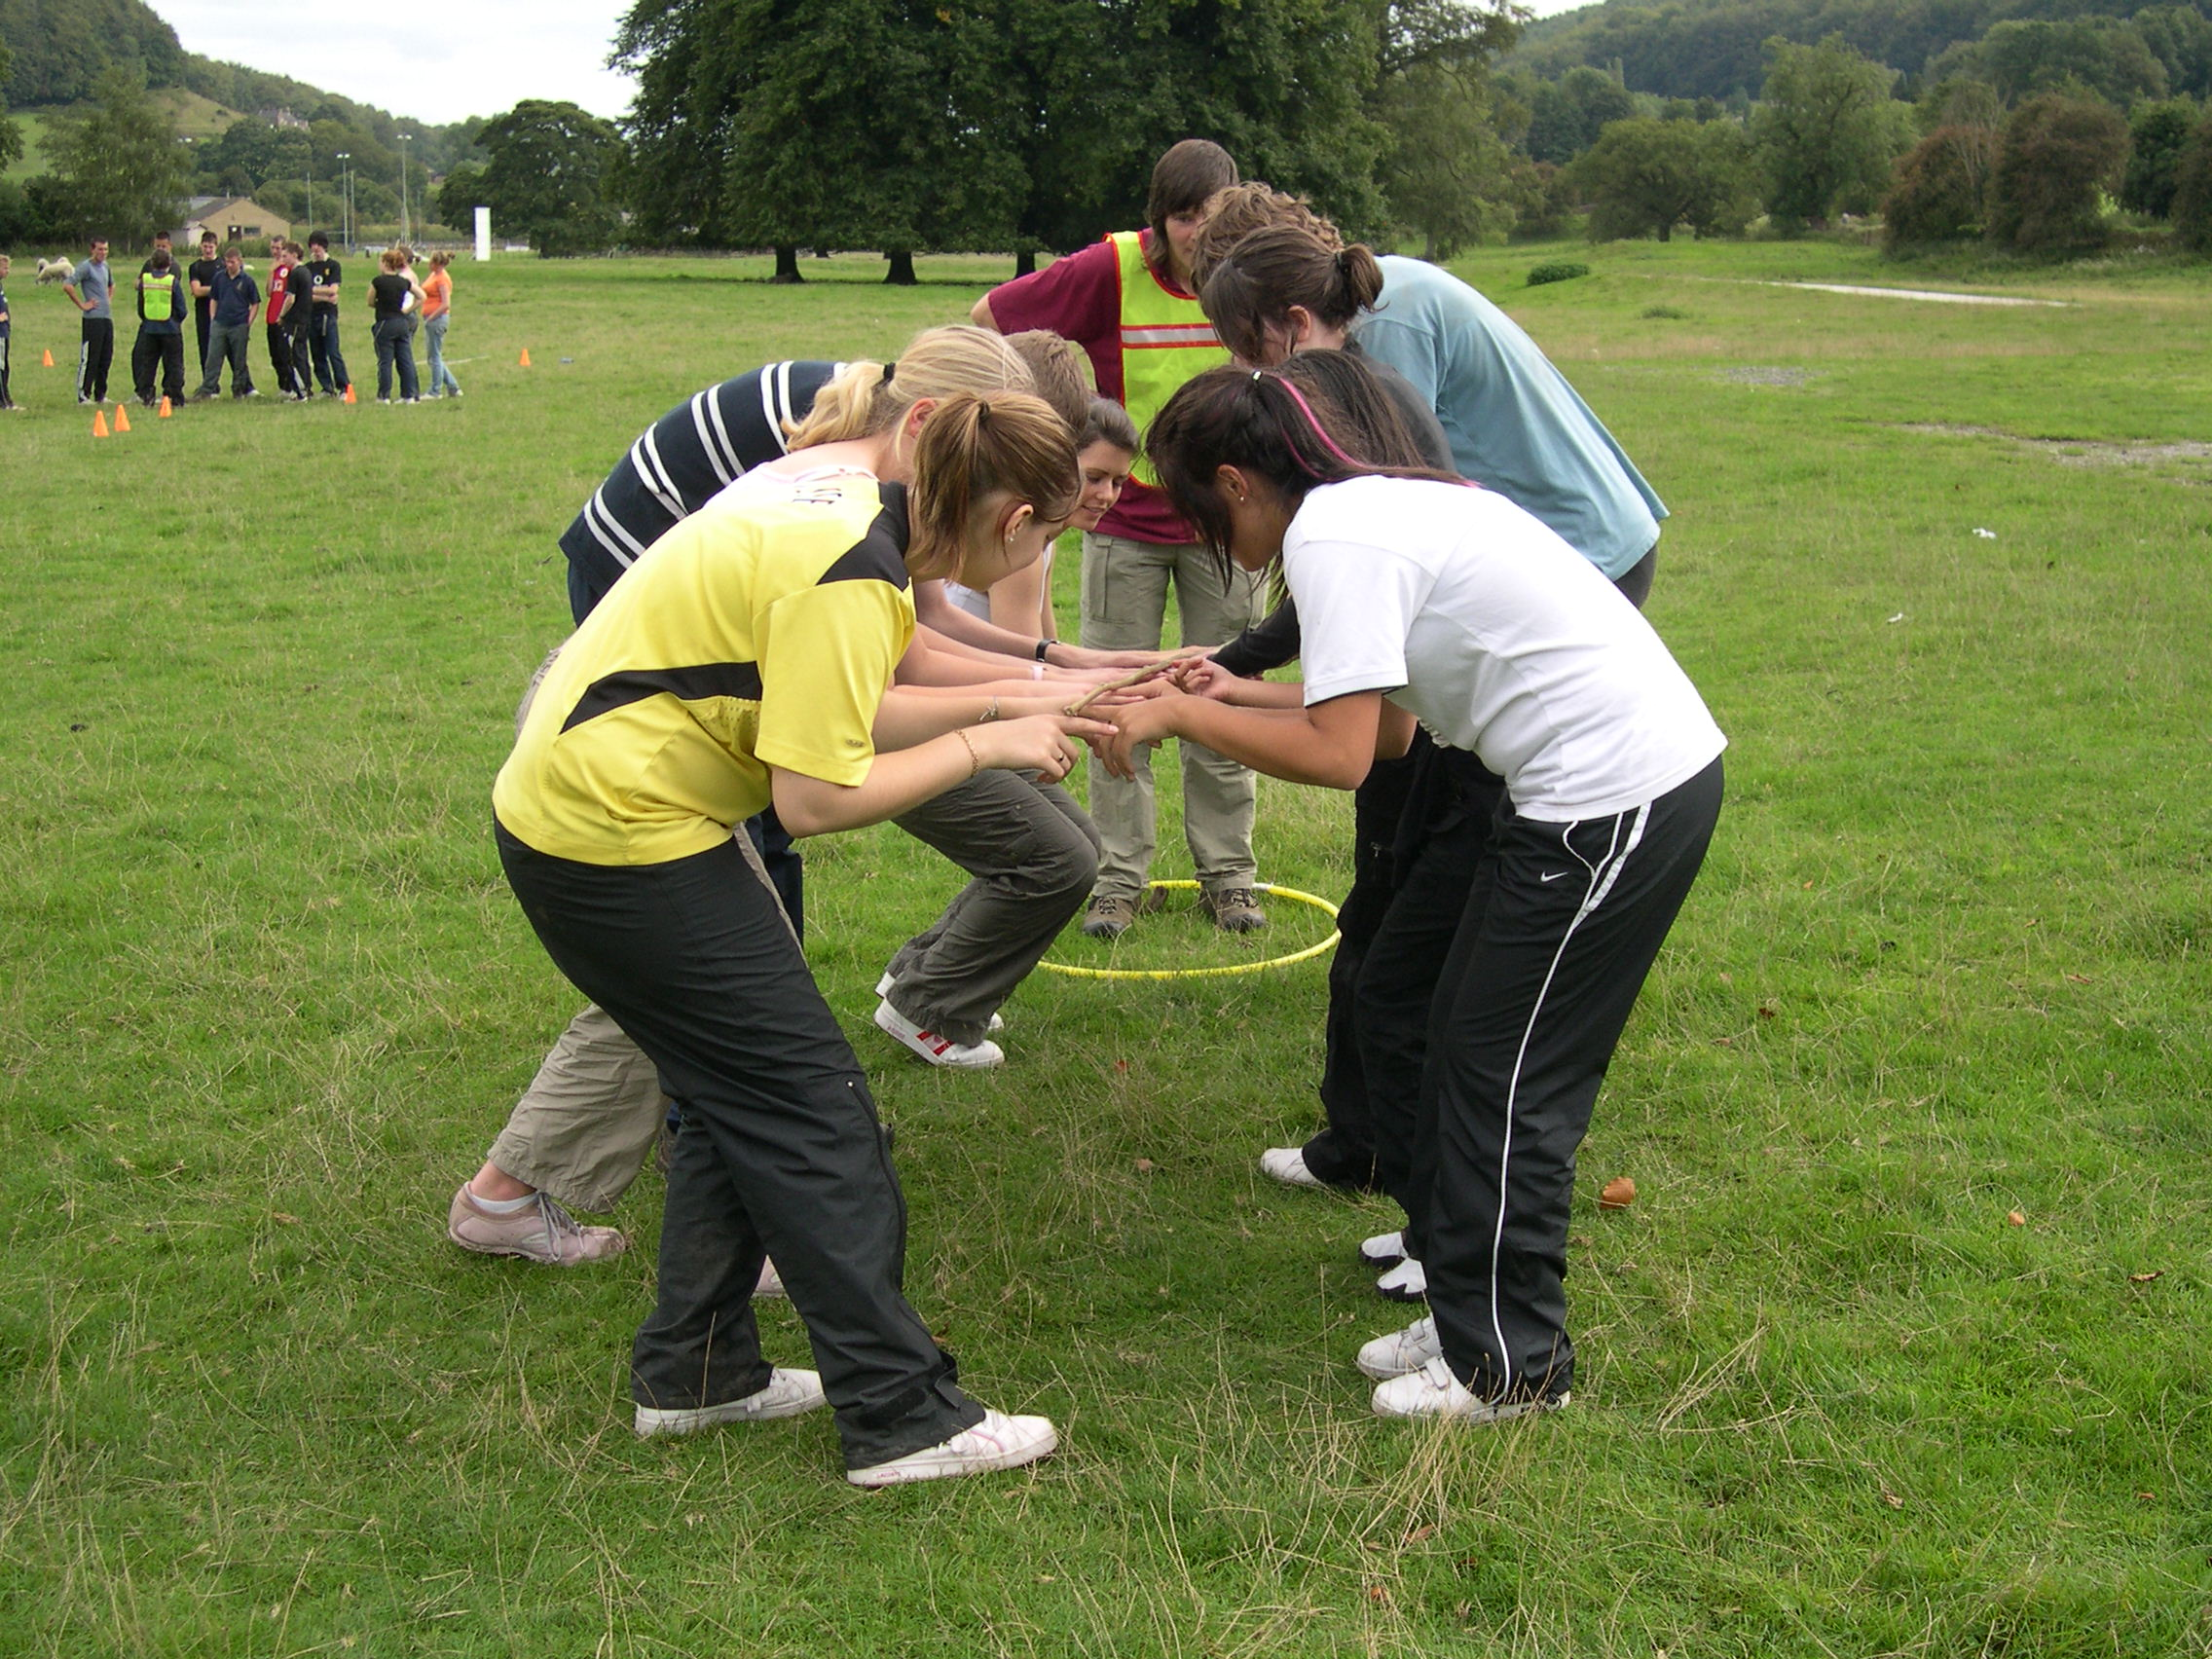 blue mountain team challenge blue mountain activities challenge your group of friends whether a small or large group to test their problem solving and team working skills by successfully overcoming a series